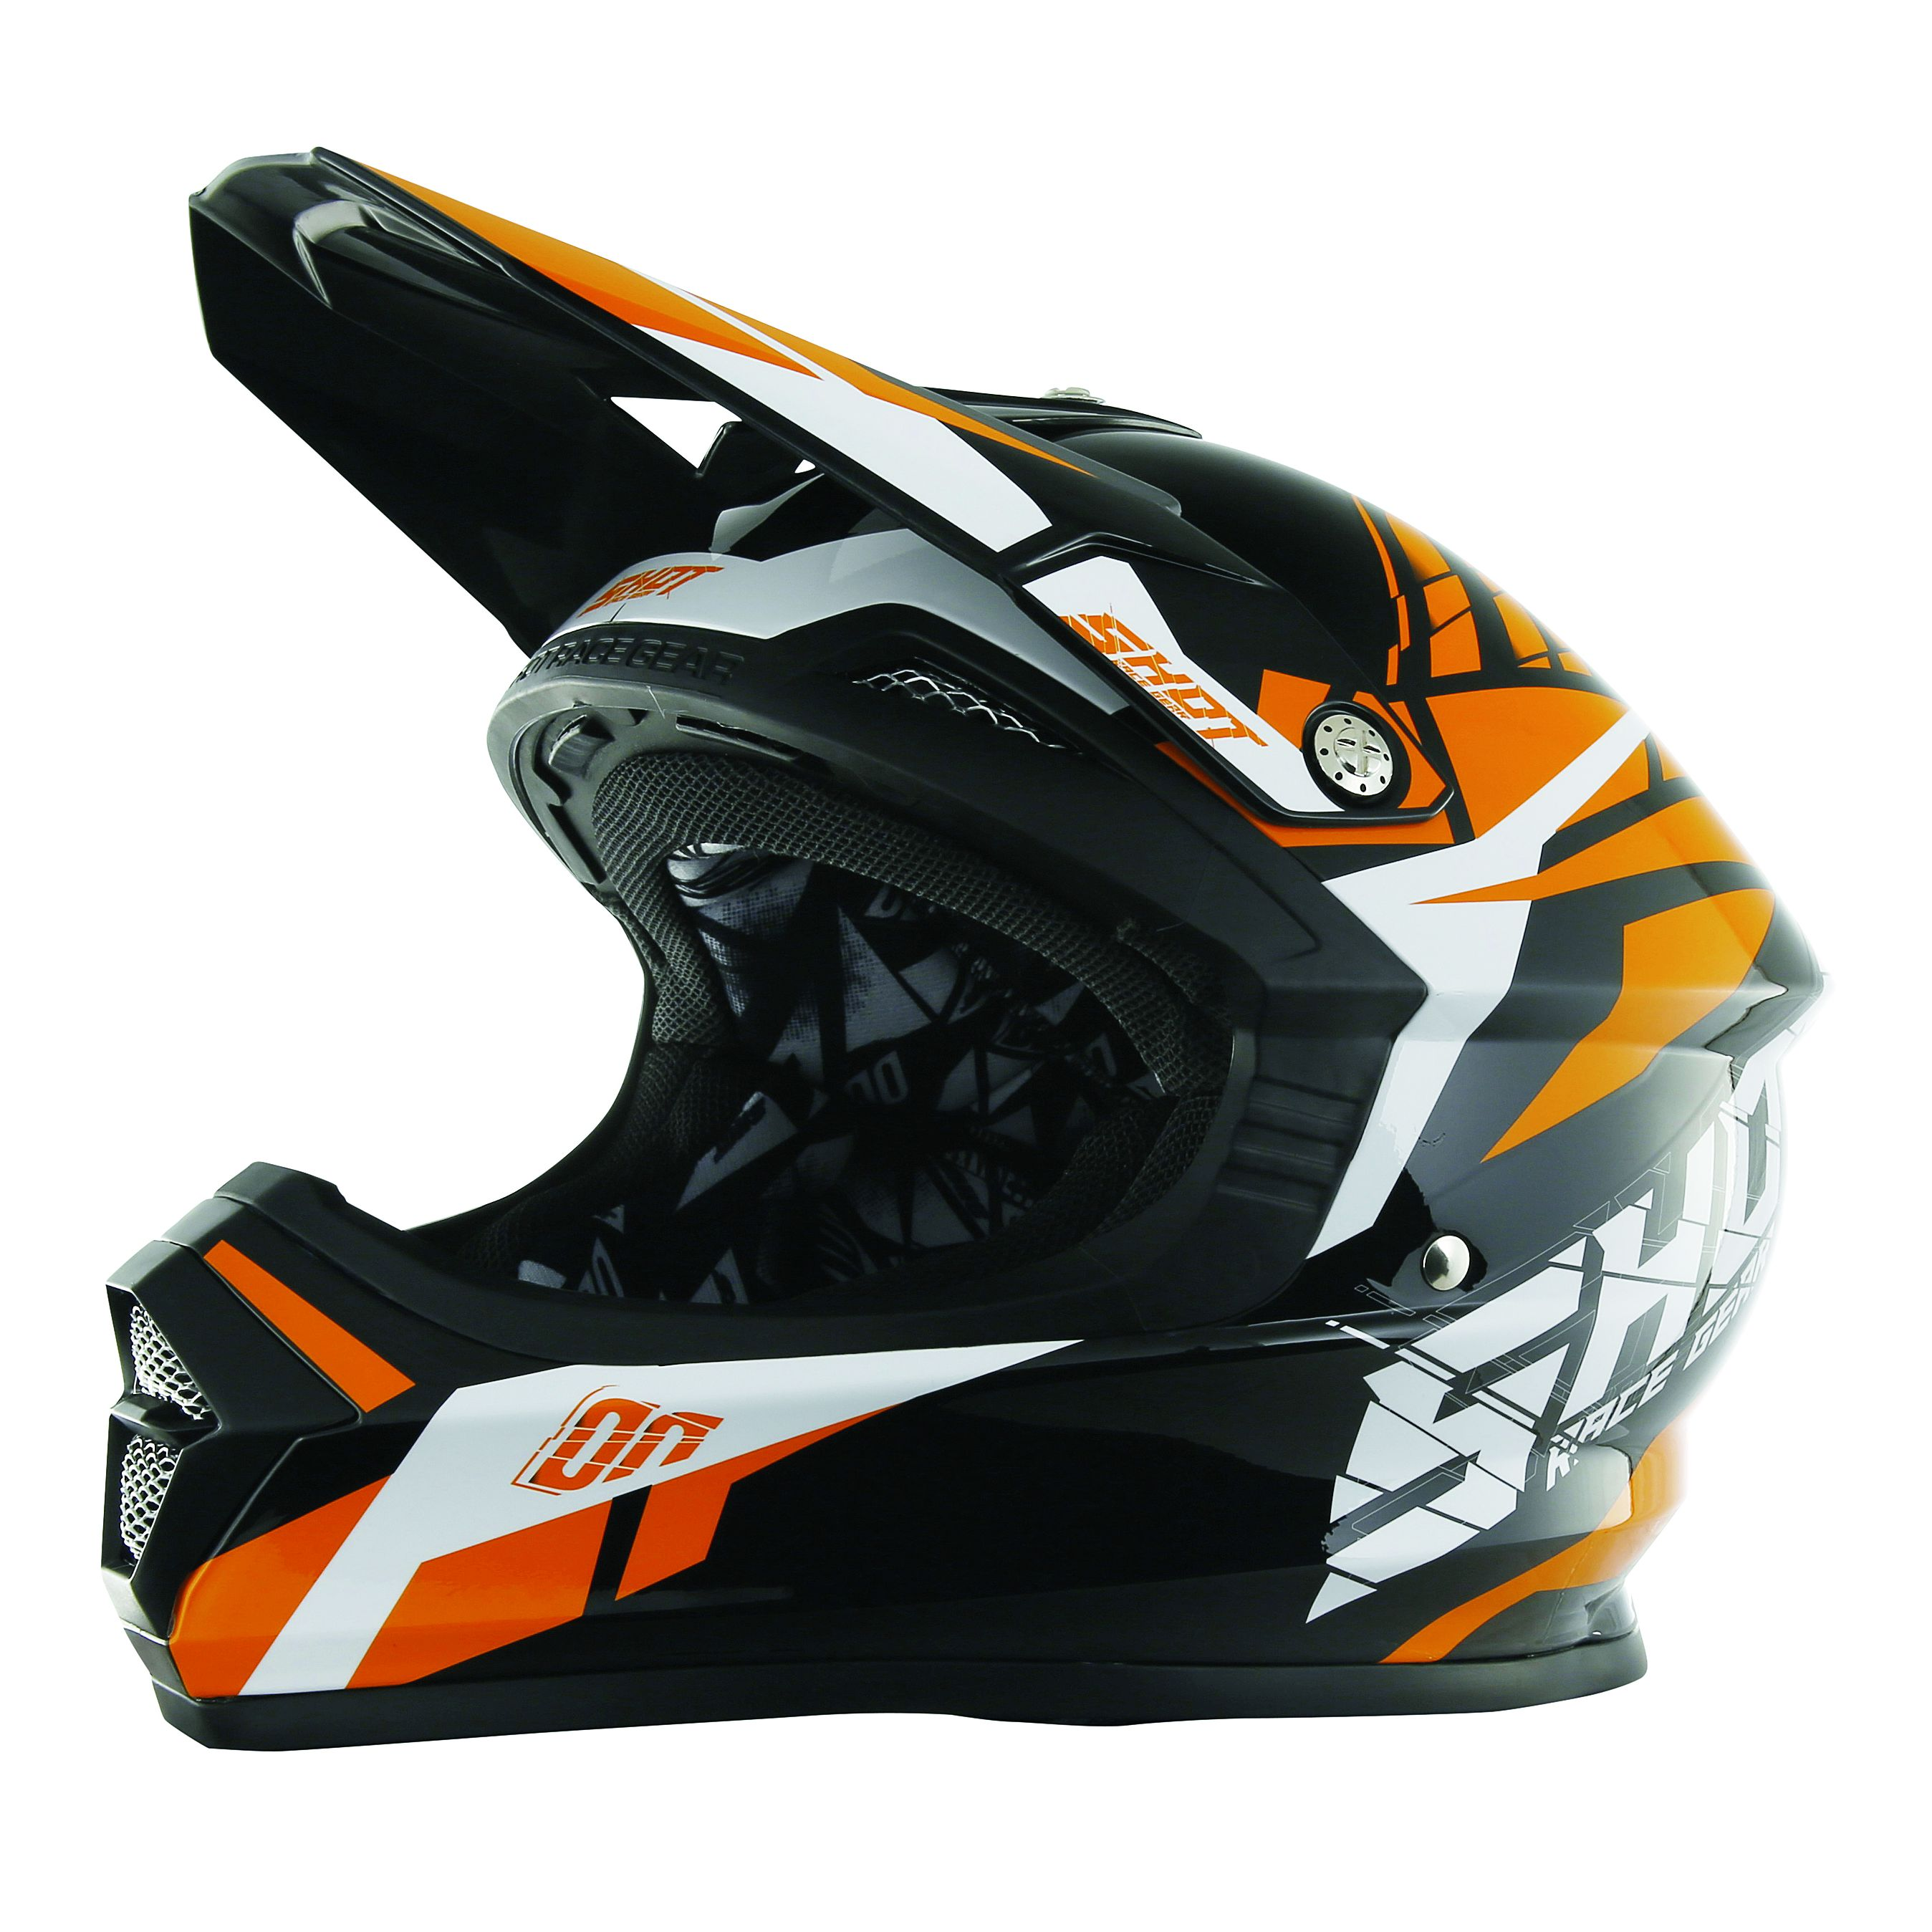 Casque cross Shot destockage FURIOUS SQUAD ORANGE  2017